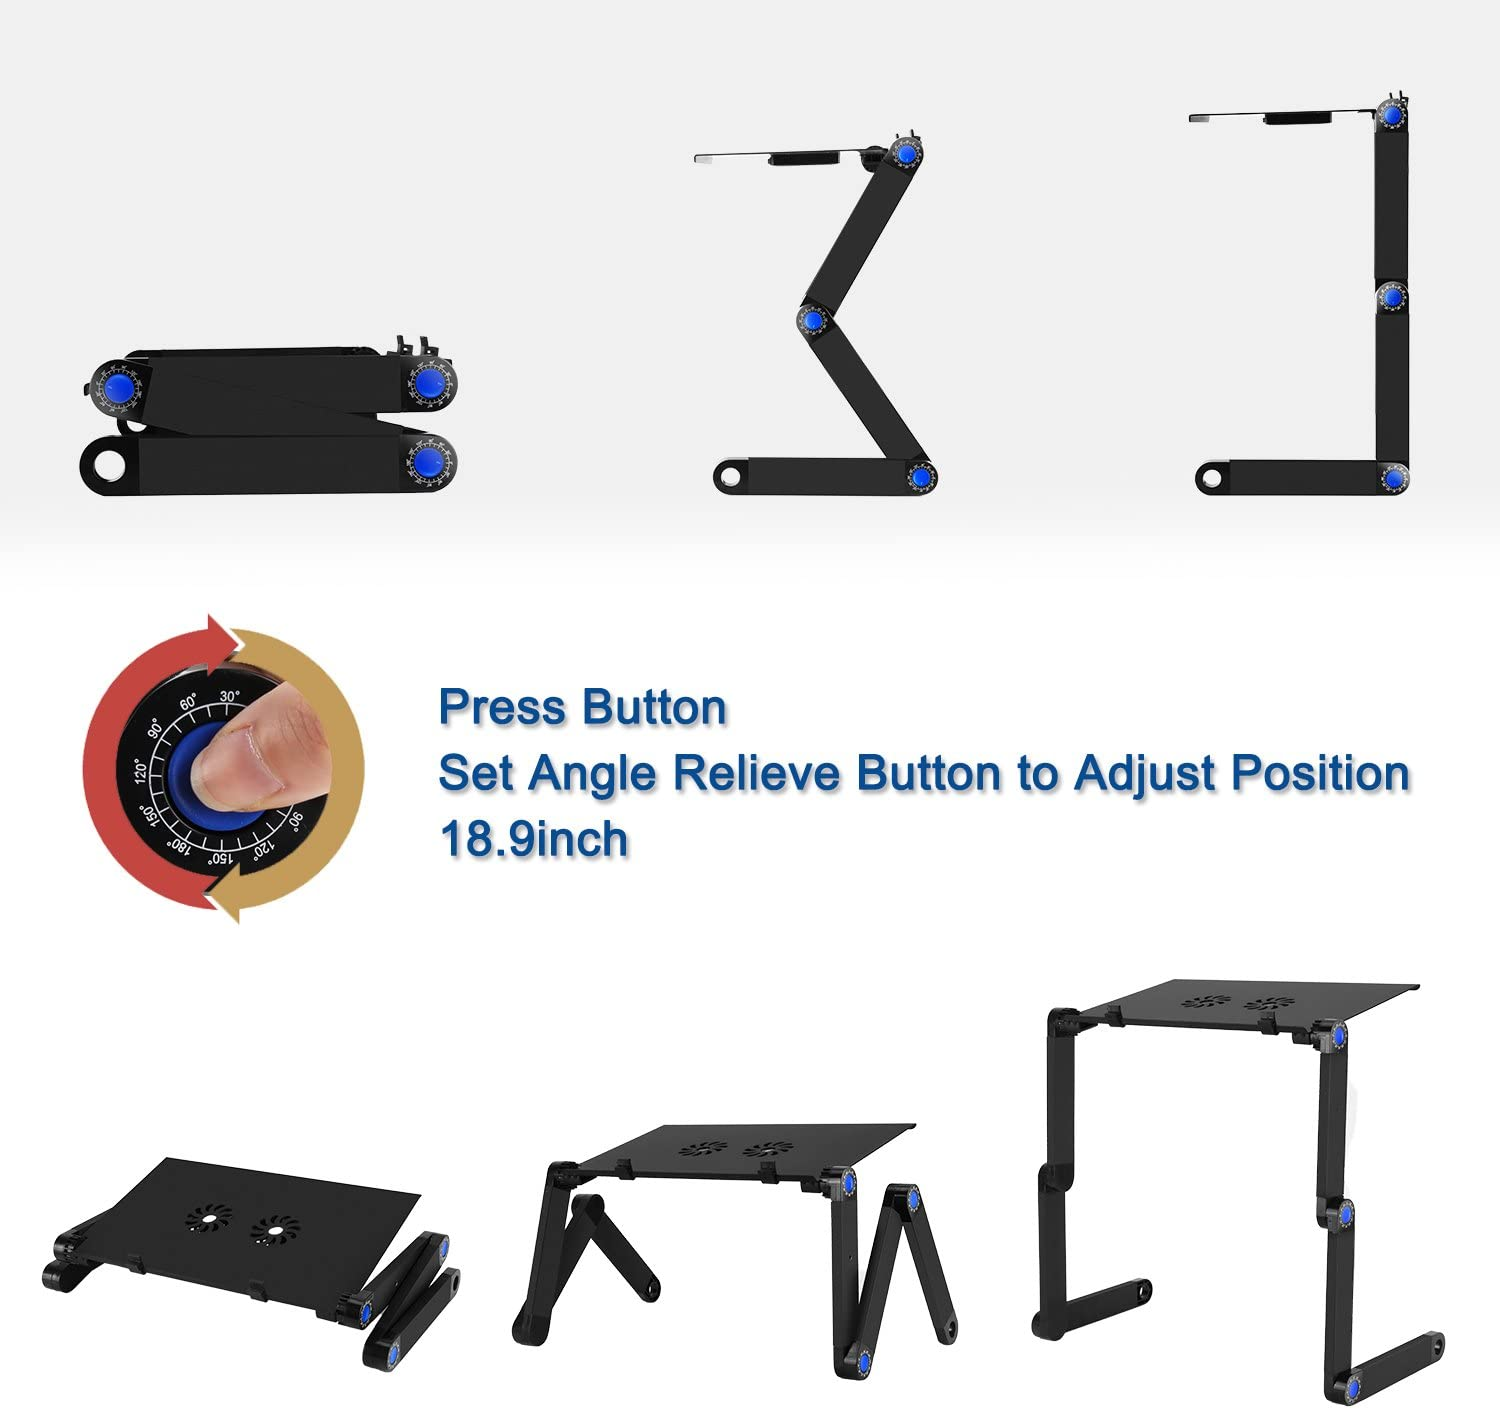 2020 Alunimum Height Adjustable Laptop Stand,Aluminum Laptop Bed Stand Notebook,Roost Foldable Aluminum Laptop Stand